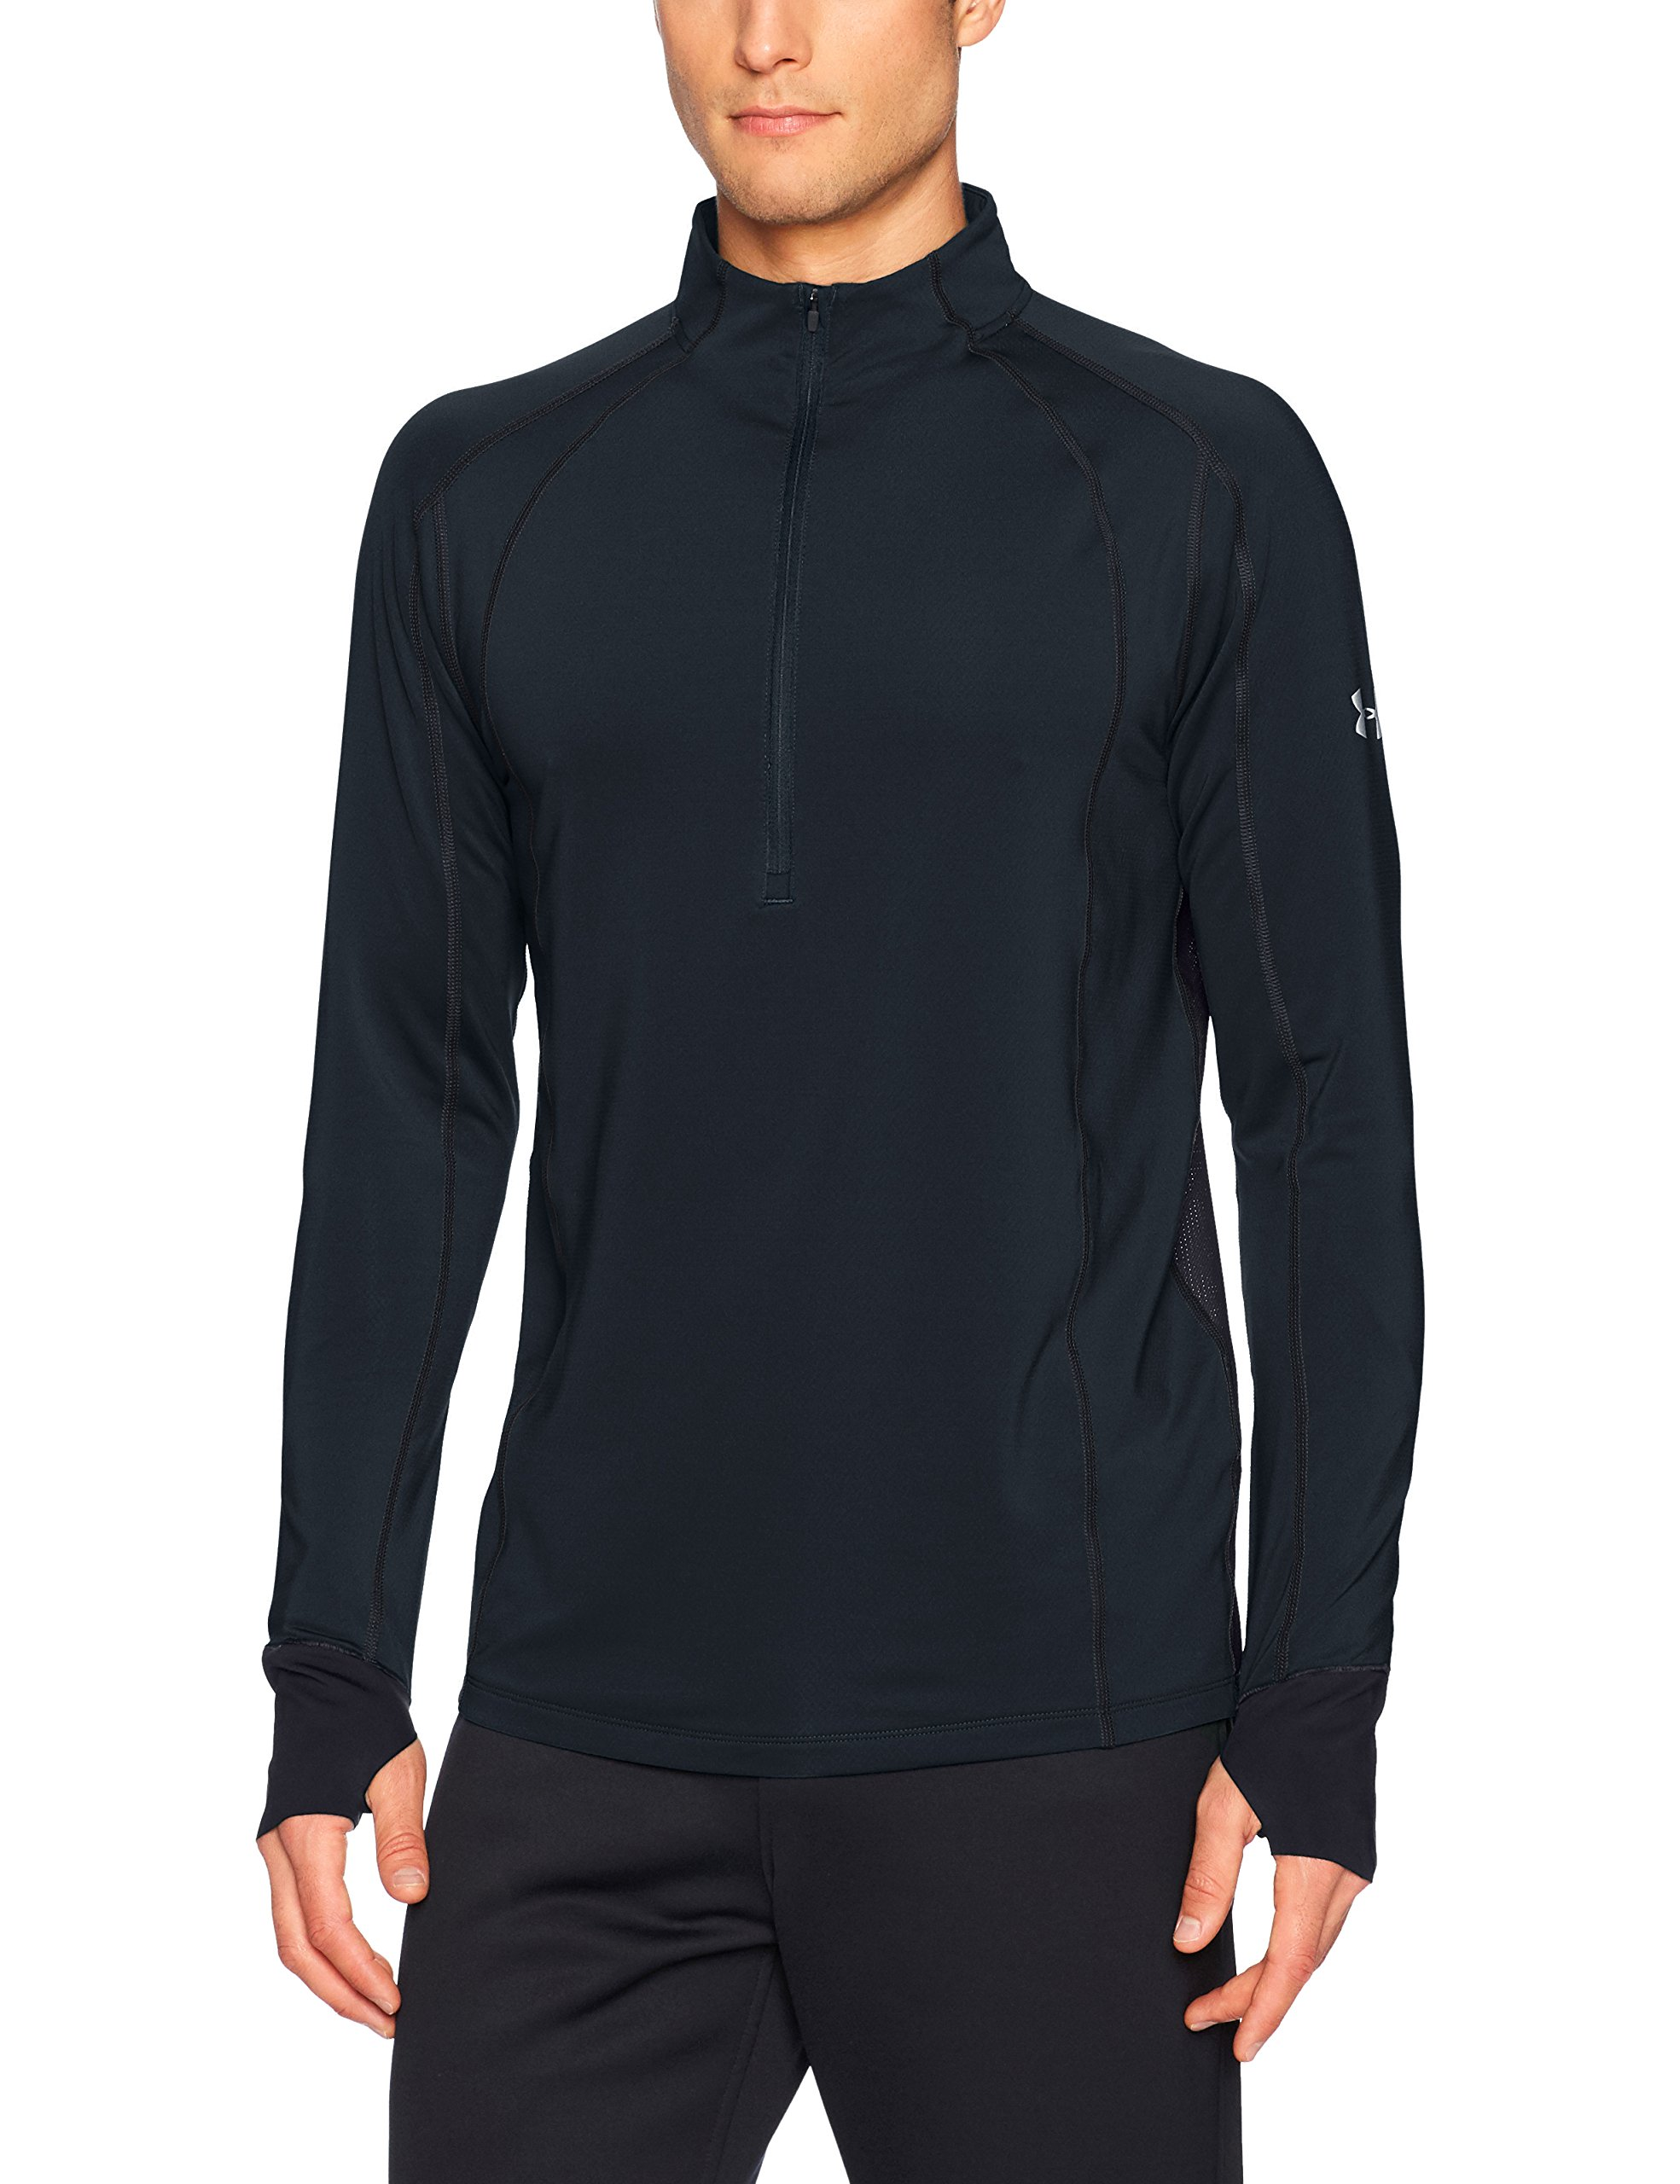 Under Armour Men's ColdGear Reactor Run ½ Zip,Black (001)/Reflective, Small